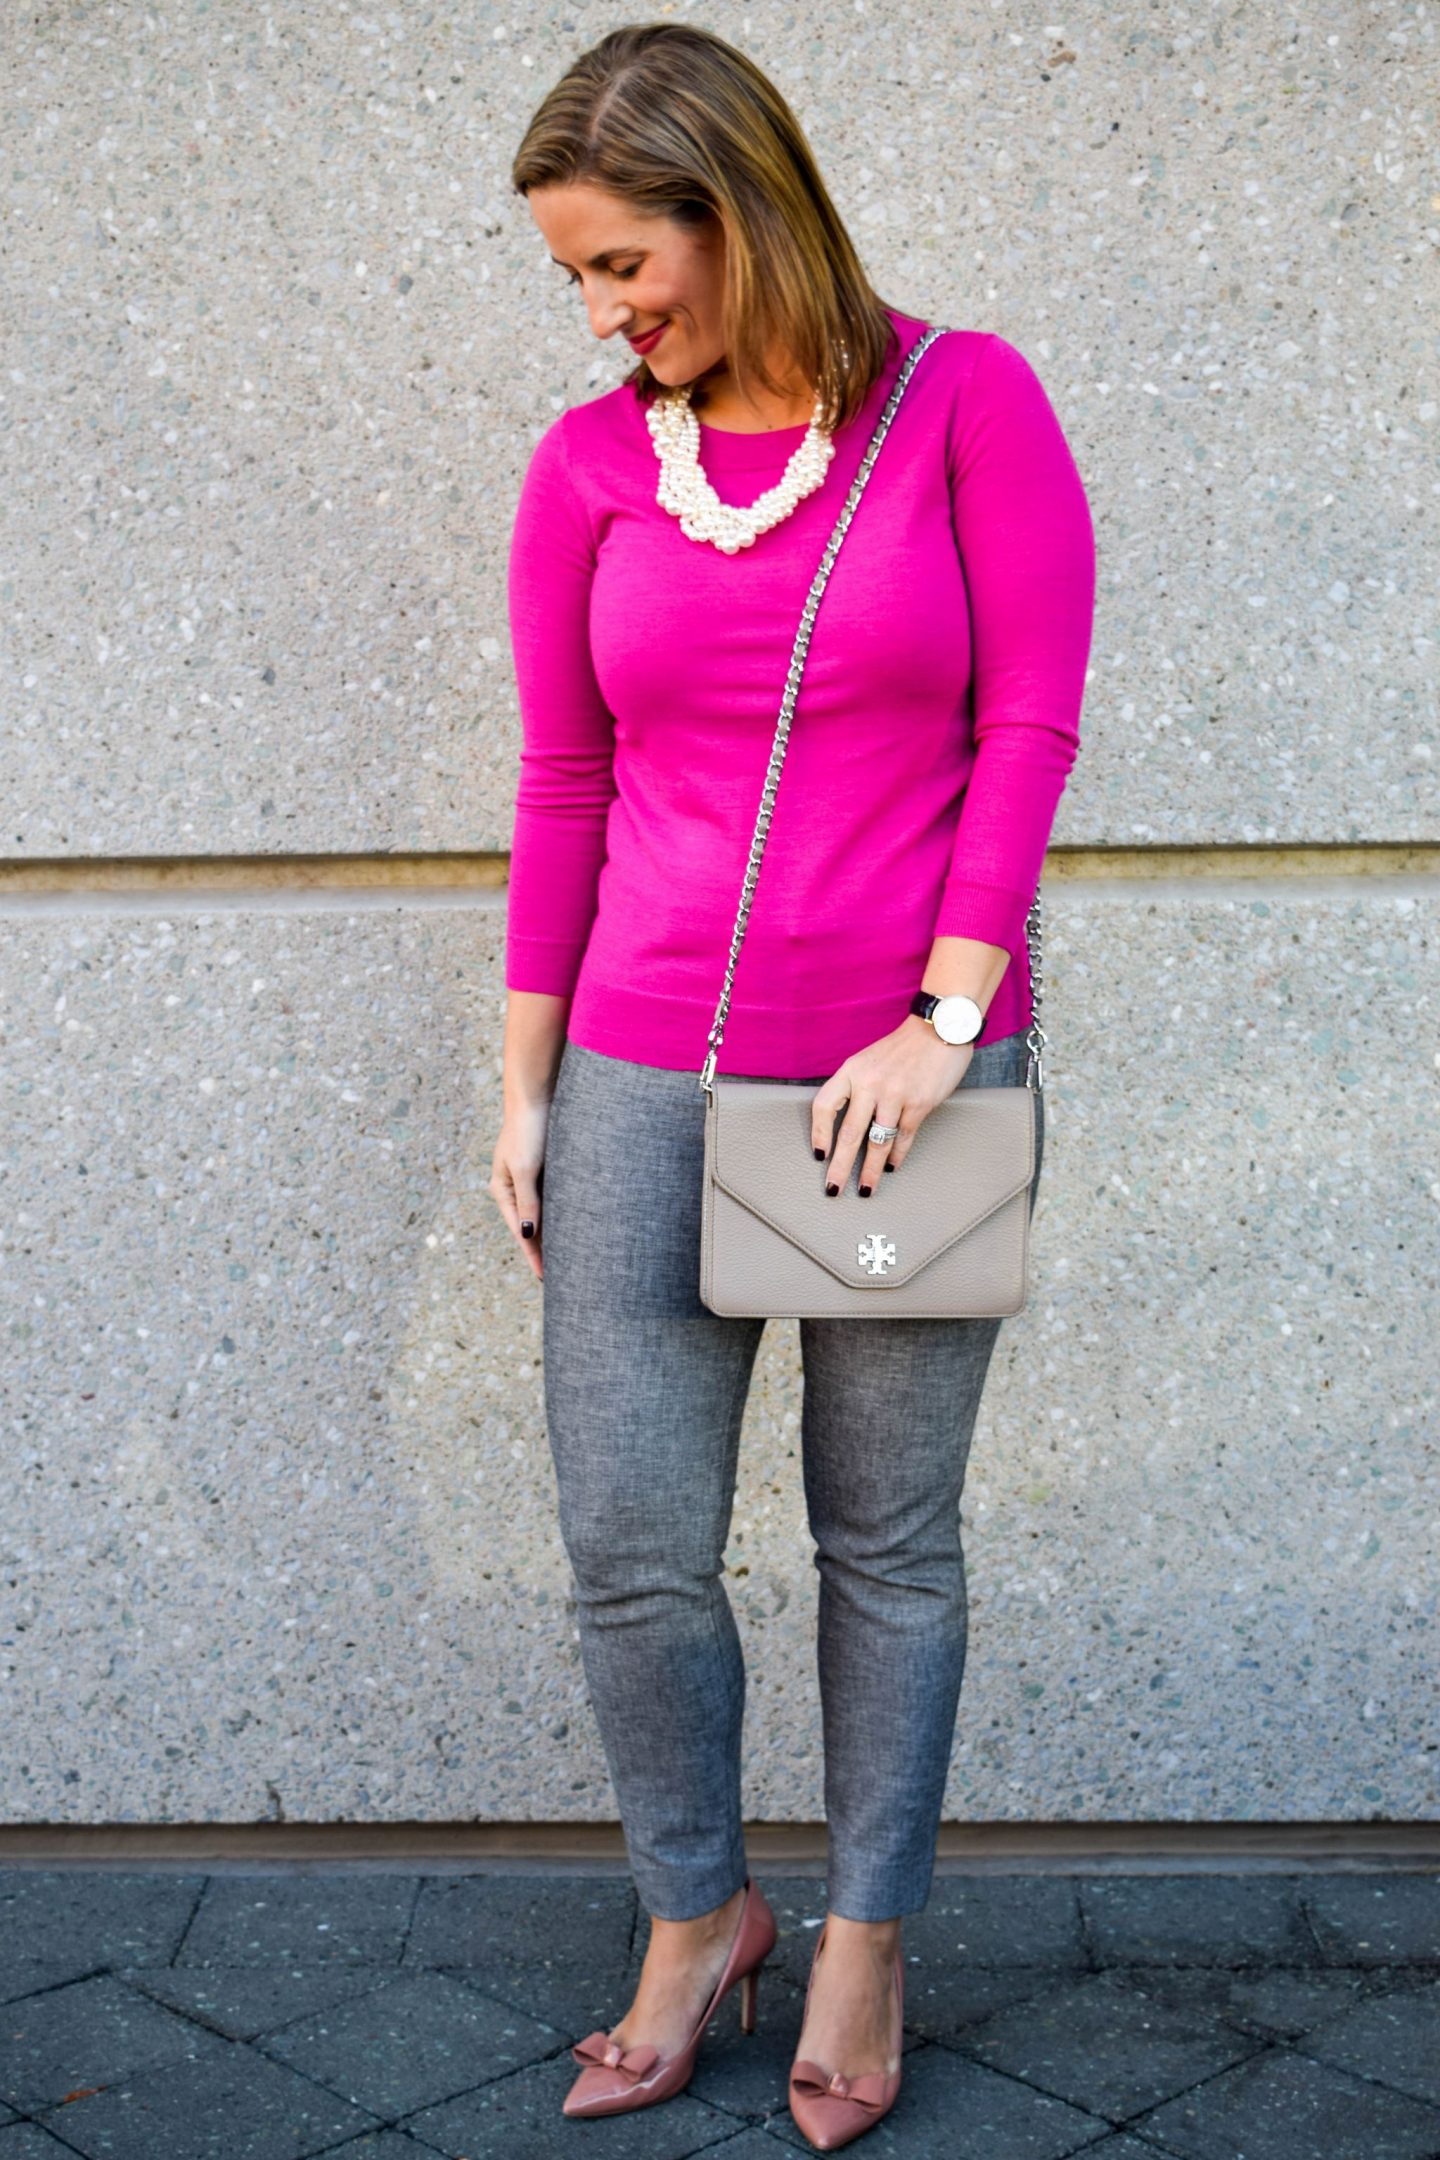 Pink & Gray Office Outfit Of The Day